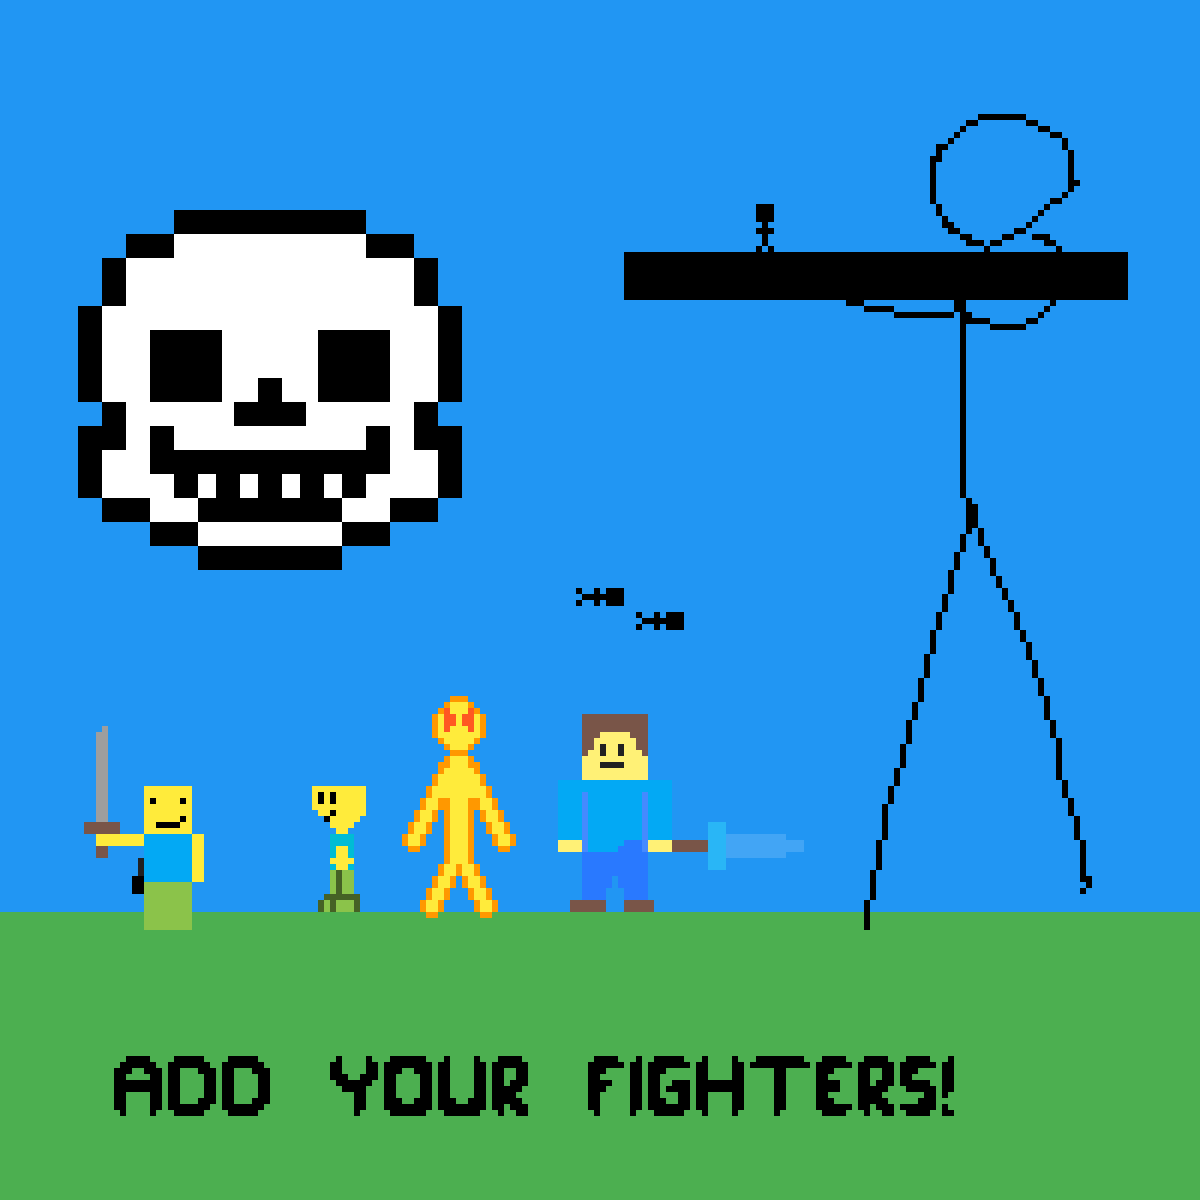 Add your own fighters! by GradyTurtle